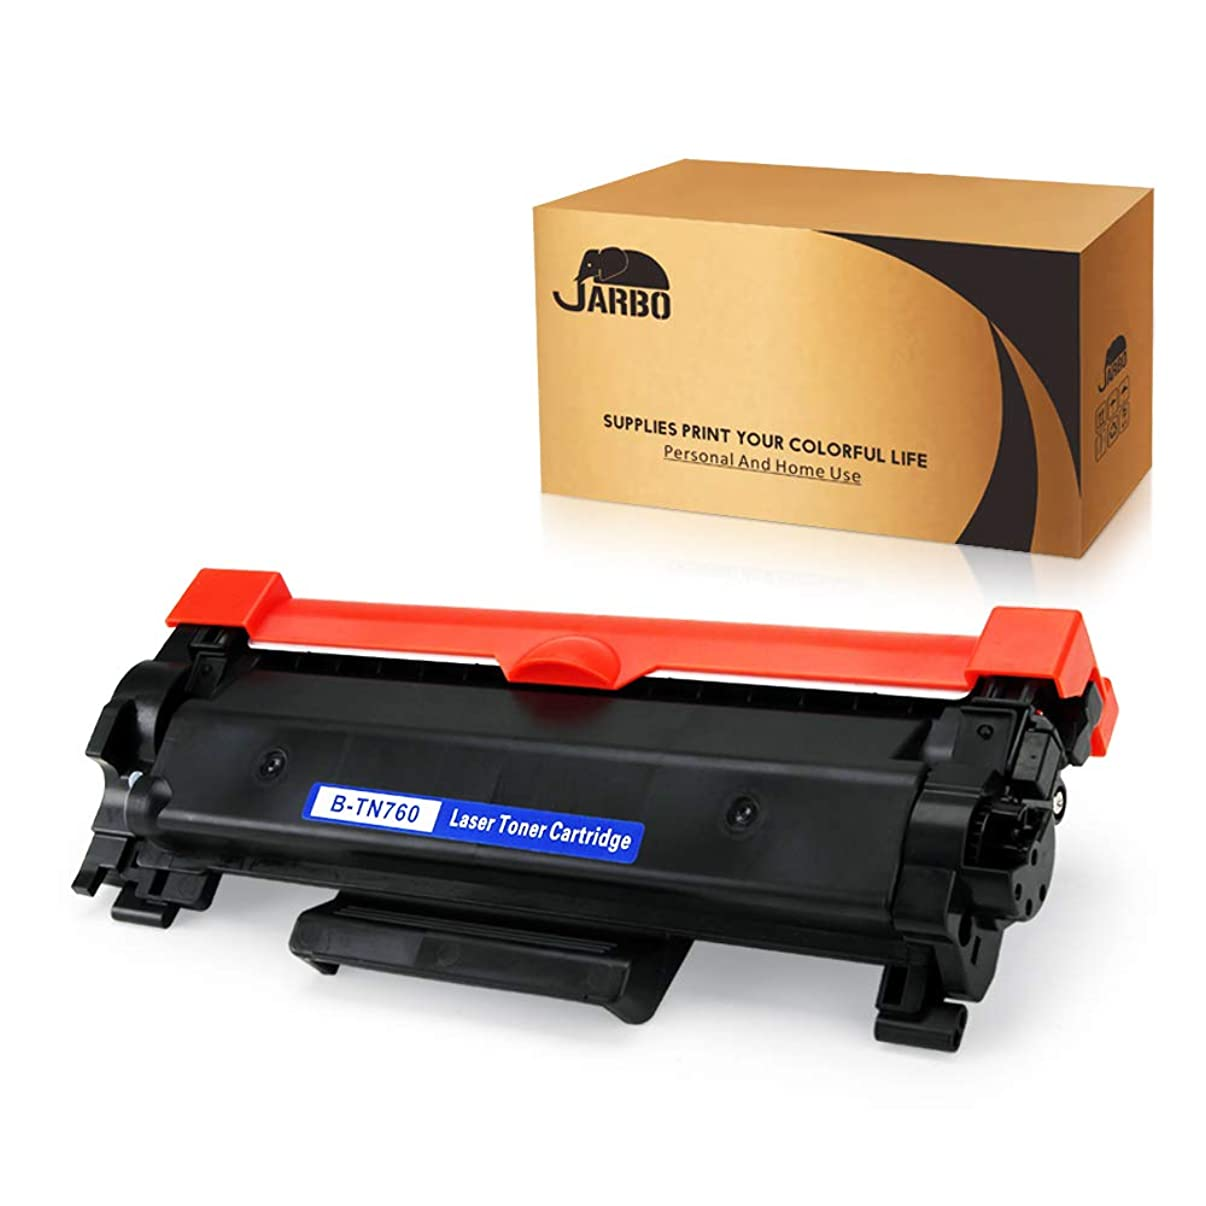 JARBO Compatible Toner Cartridges Replacement for Brother TN760 TN730 High Yield, Use with Brother HL-L2350DW HL-L2370DW HL-L2370DWXL HL-L2390DW HL-L2395DW DCP-L2550DW MFC-L2710DW MFC-L2750DW Printer